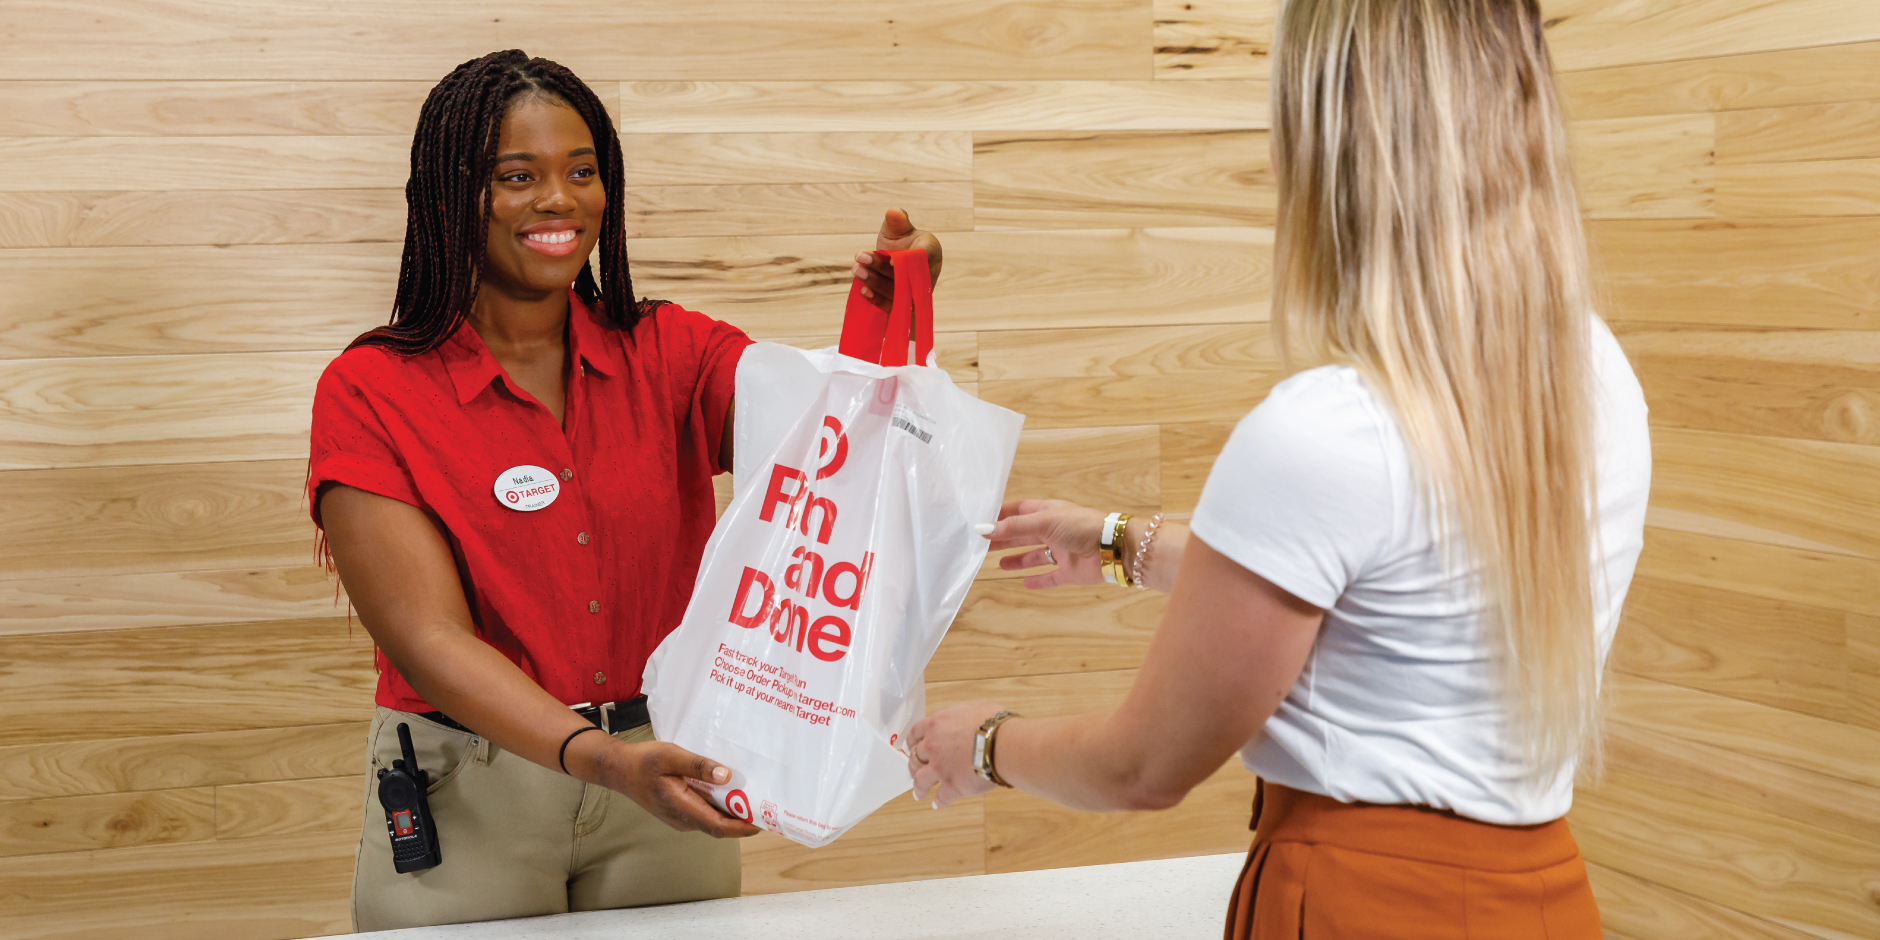 A team member wearing red and khaki hands a bag over a counter to a guest